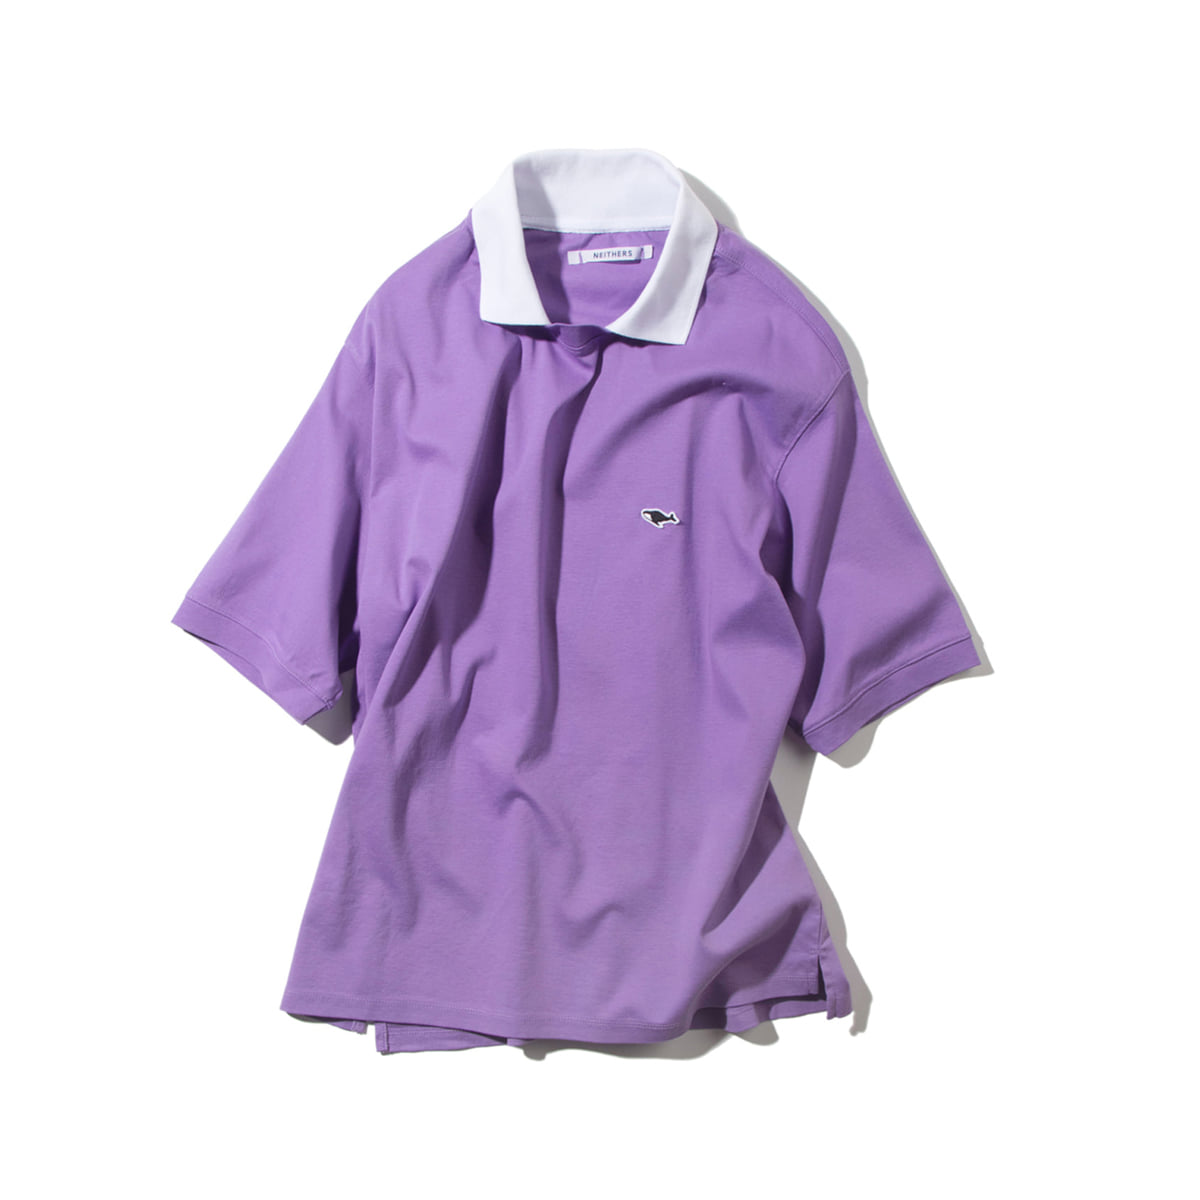 [NEITHERS] 202-1 COLLAR T-SHIRT 'PURPLE'